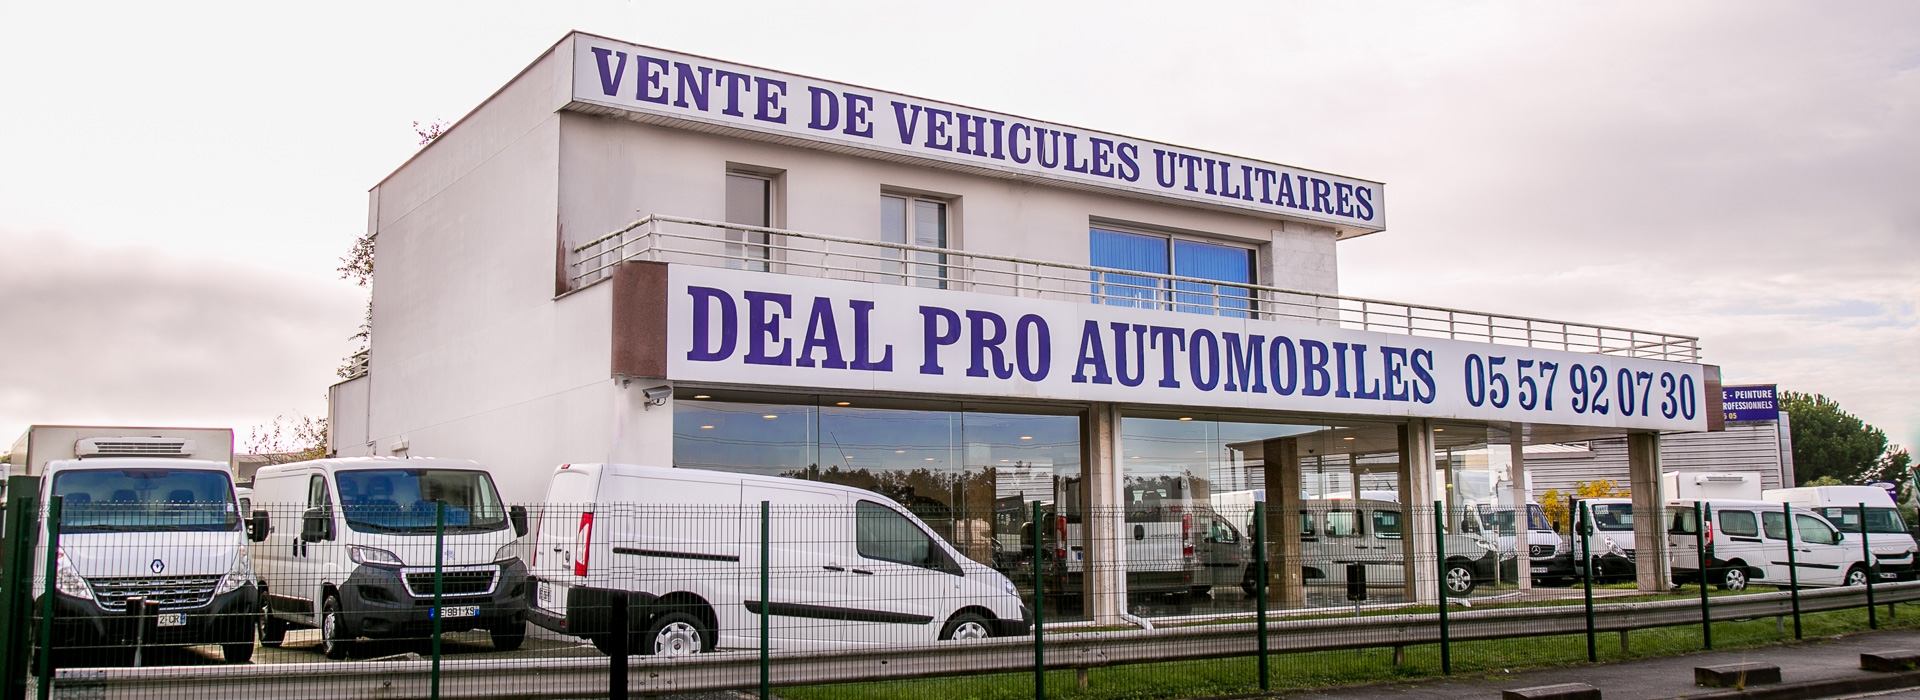 Slide 3 du site de Deal pro automobiles